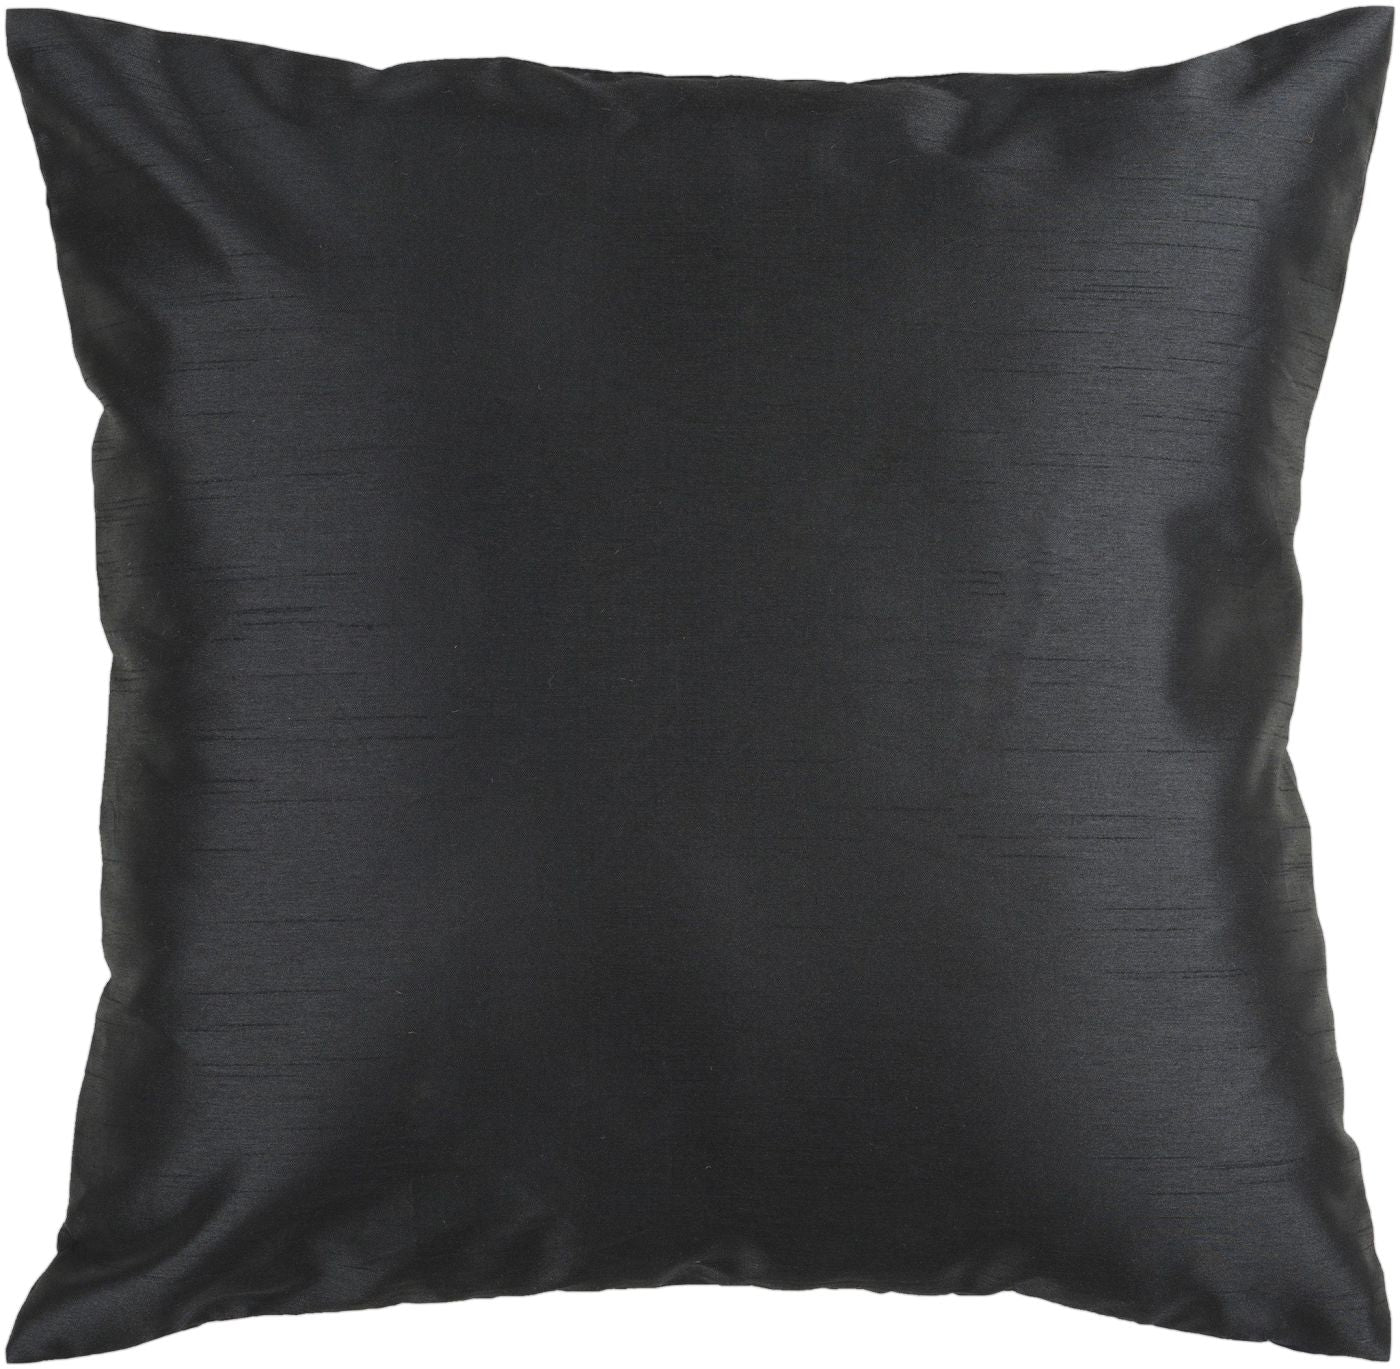 Surya Solid Luxe Throw Pillow Black HH037-1818P. Only $18.00 at Contemporary Furniture Warehouse.